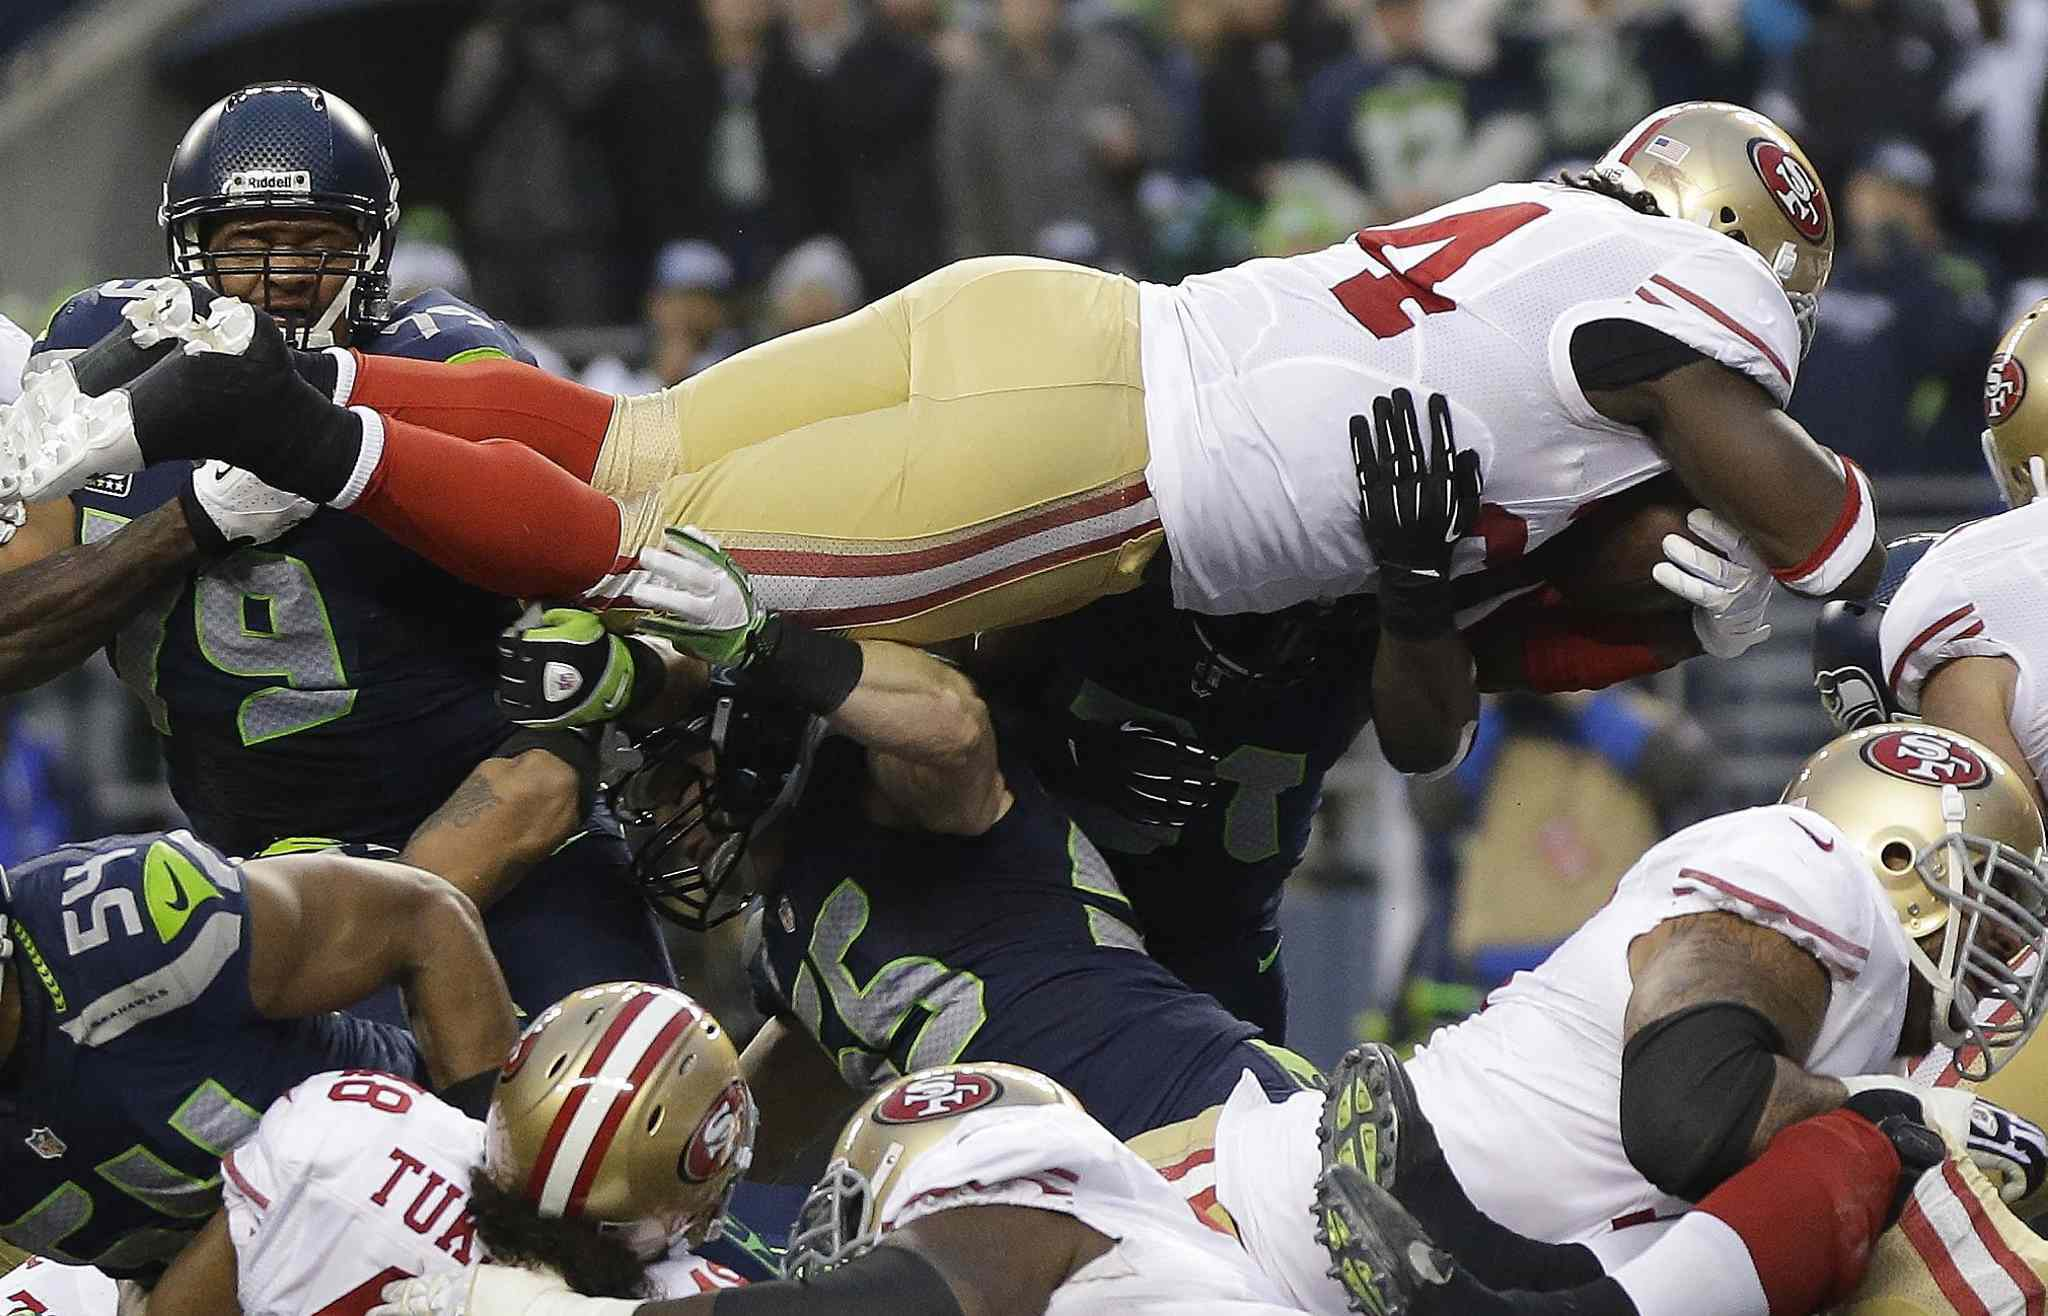 49ers' Anthony Dixon dives into the end zone.